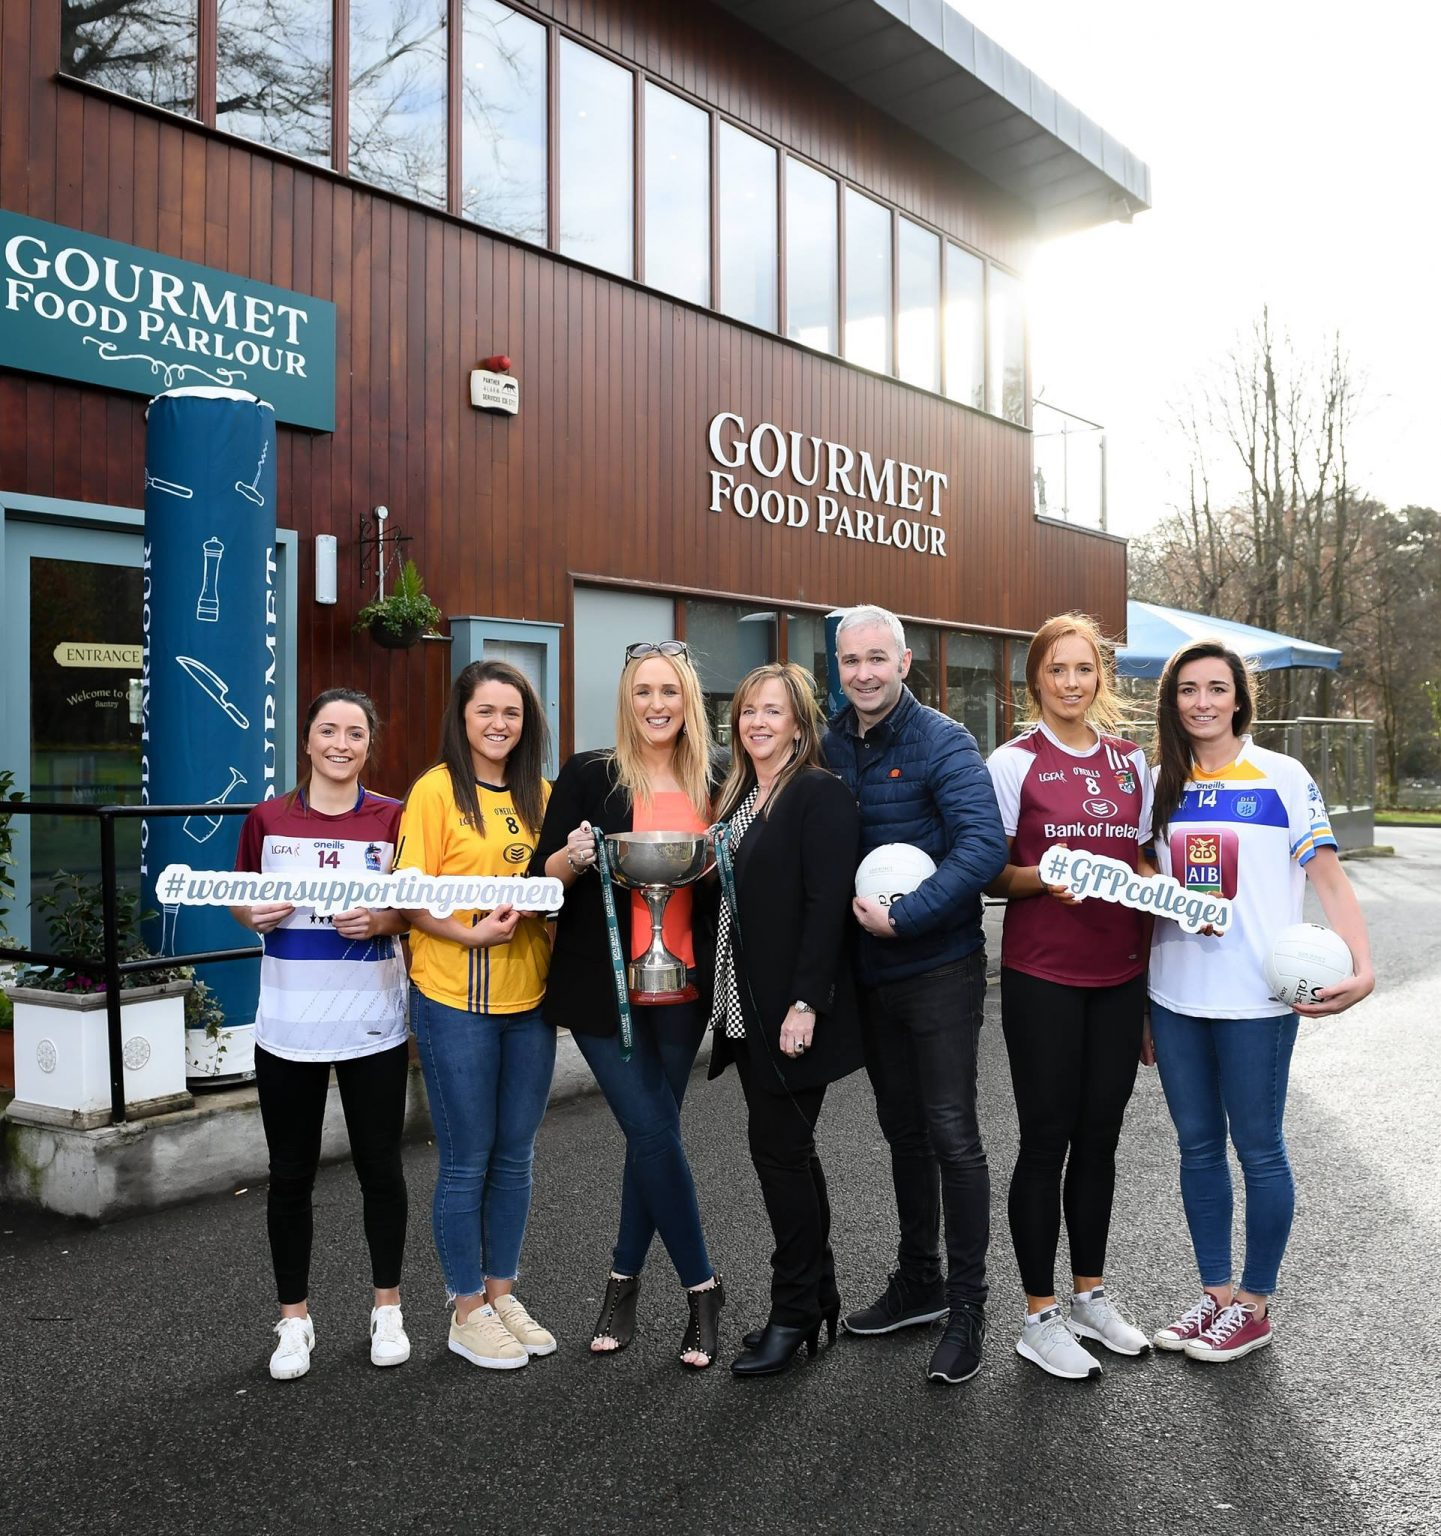 For Ladies Footballers two either side of the CEO of Ladies Gaelic Football Association and the owner of sponsors Gormet Food Parlour hold a cup to advertise the O'Connor Cup Semi Finals